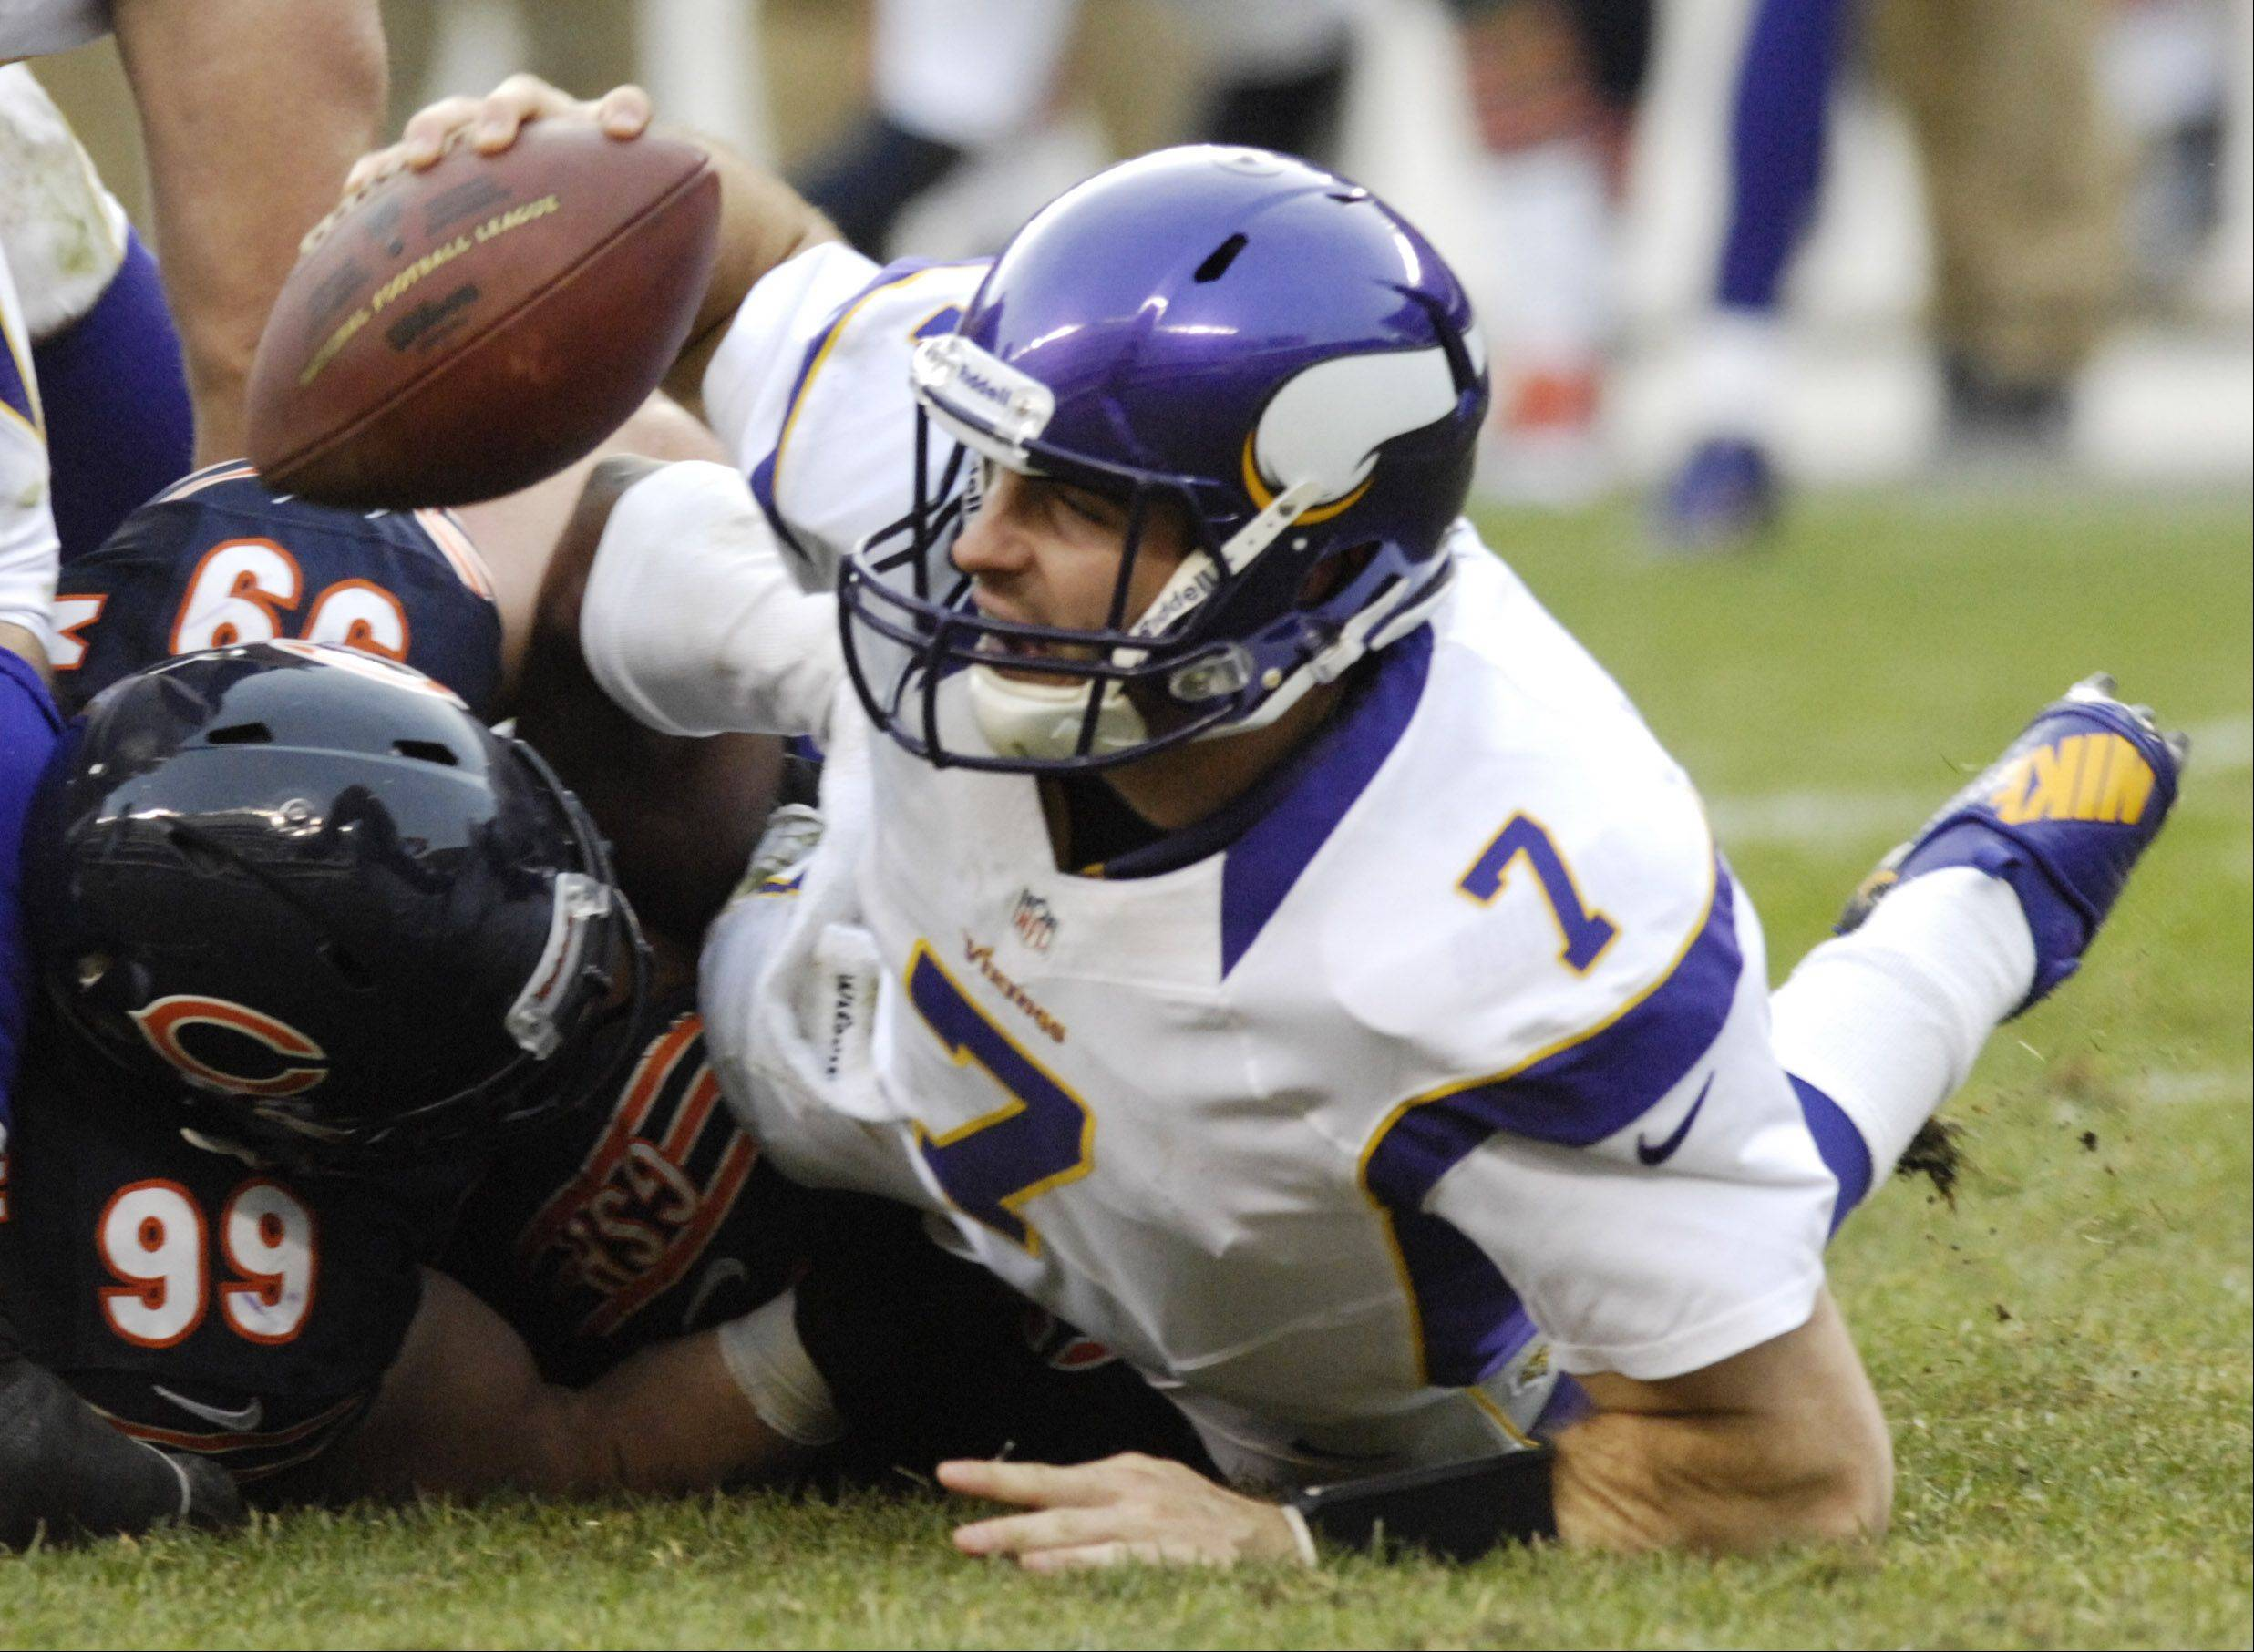 Minnesota Vikings quarterback Christian Ponder gets sacked by Chicago Bears defensive end Shea McClellin at Soldier Field Sunday.